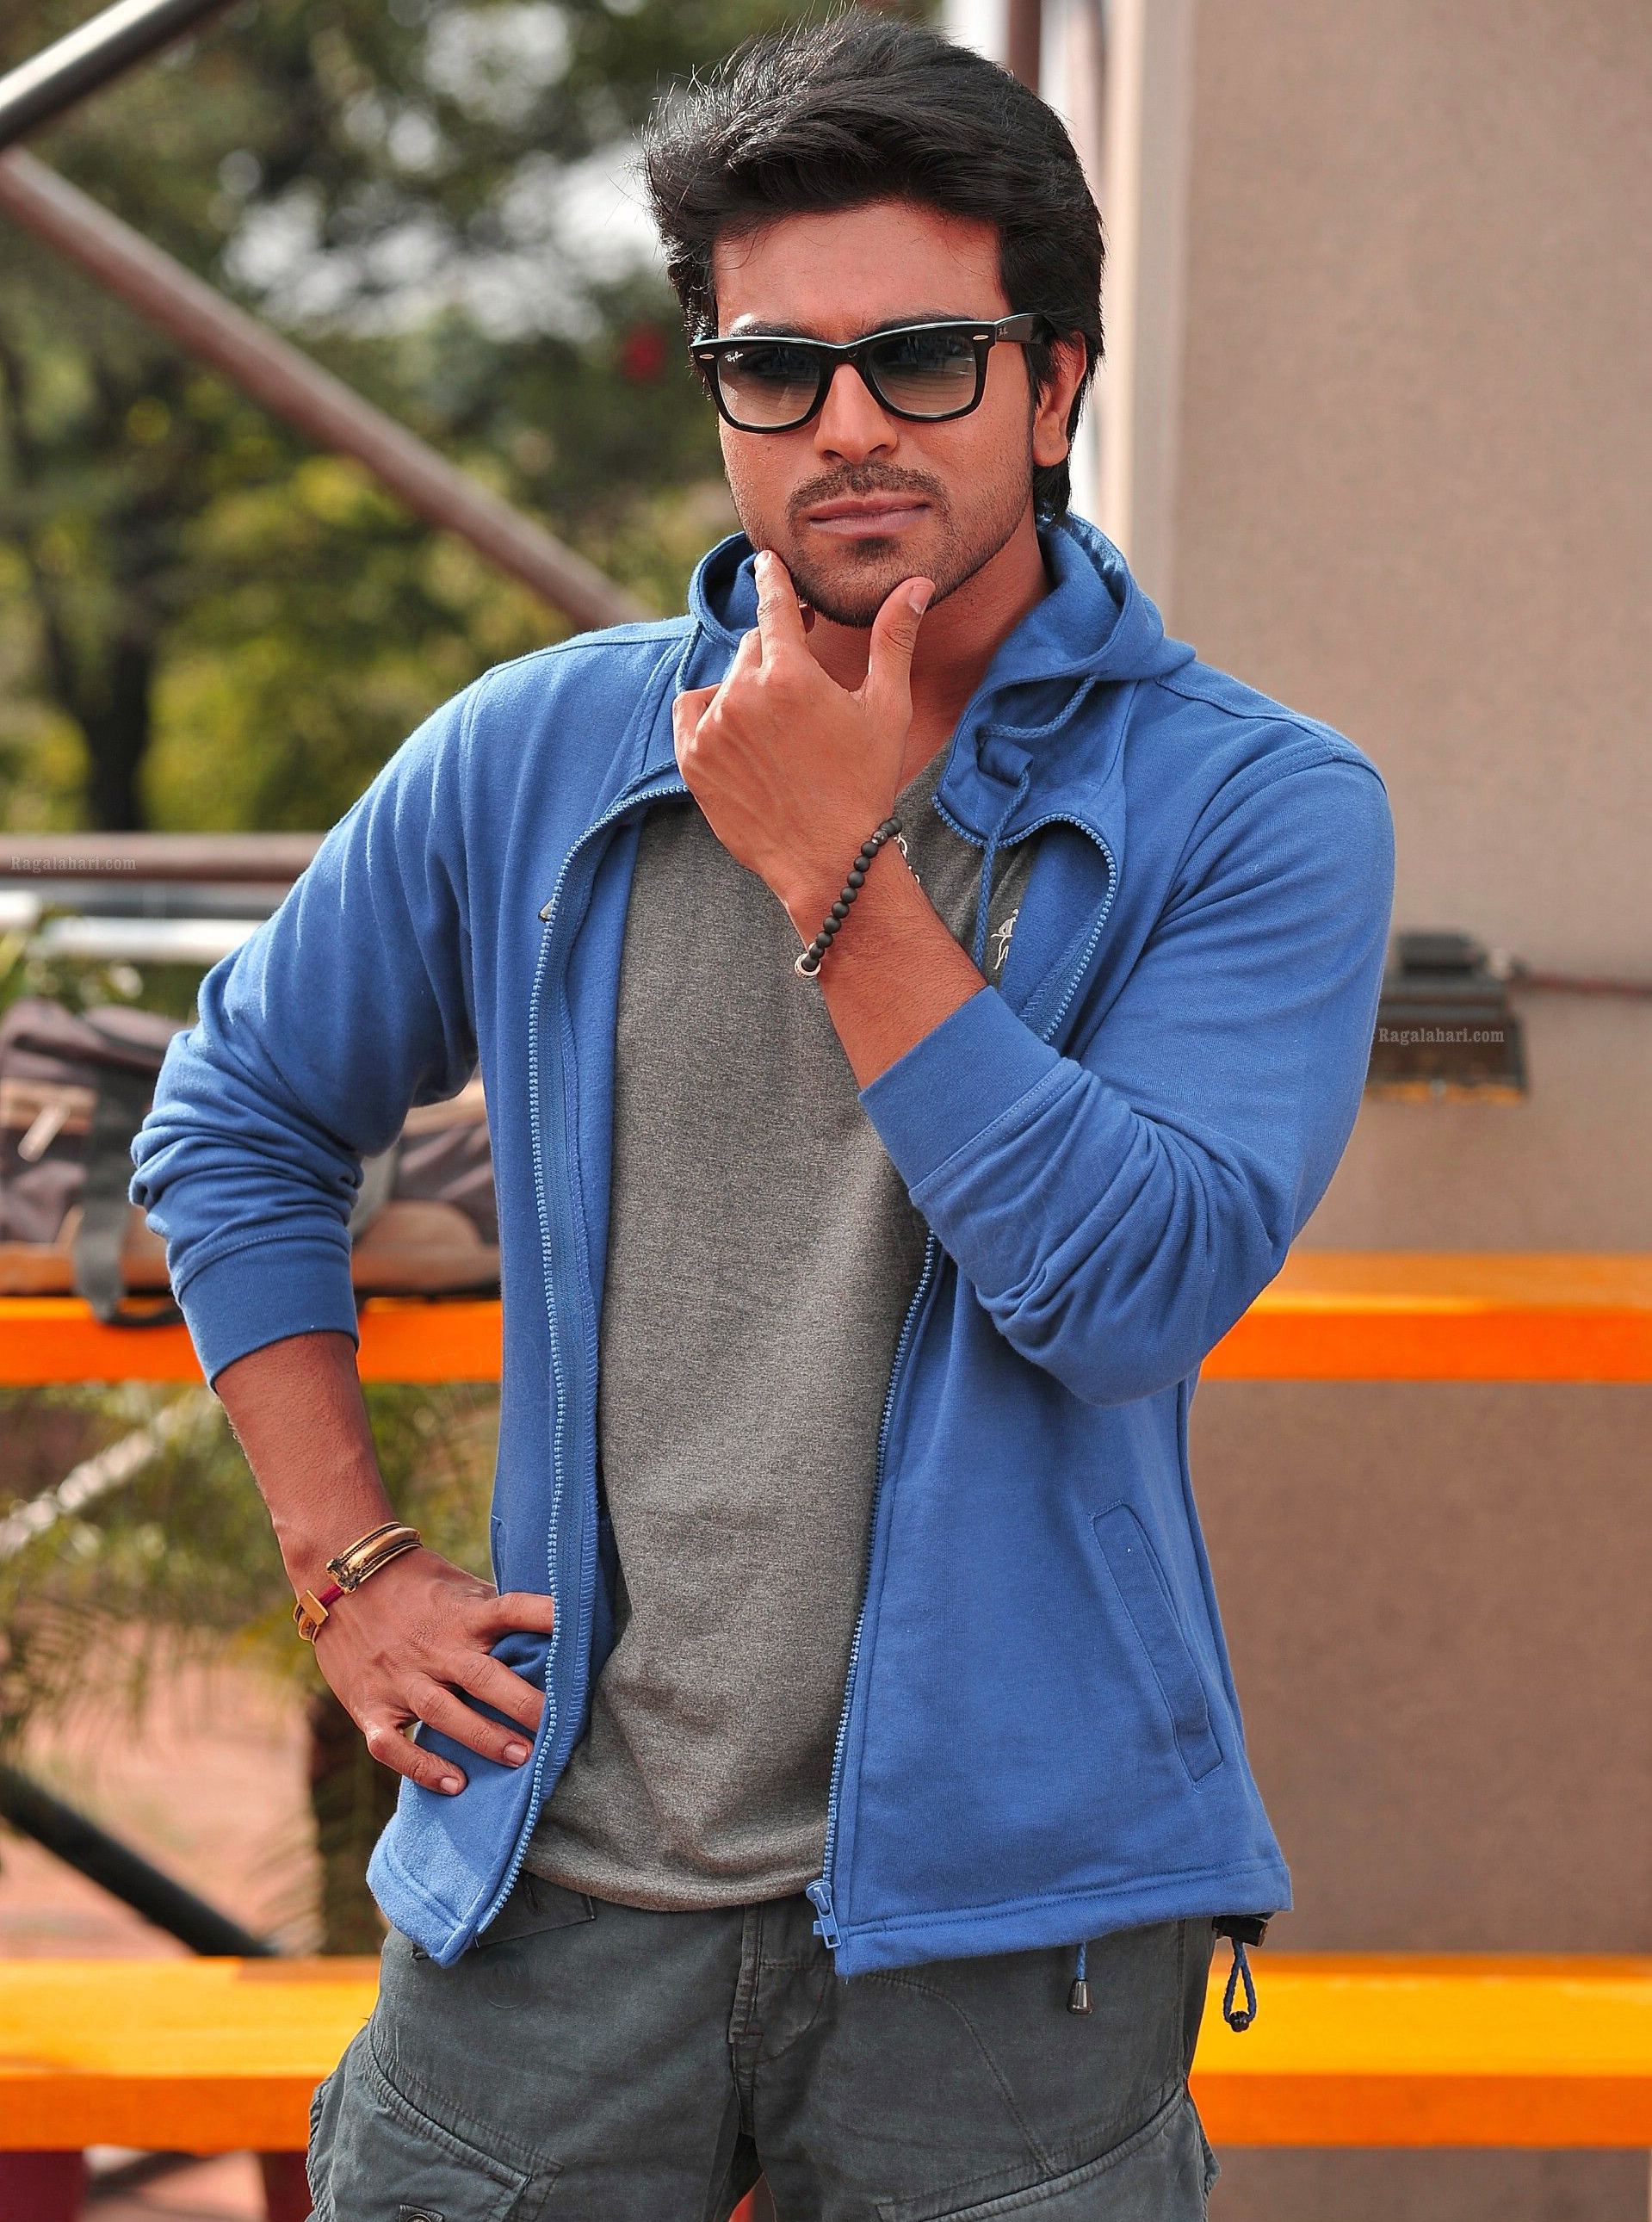 Ram charan Images Wallpaper Pic Free for Facebook